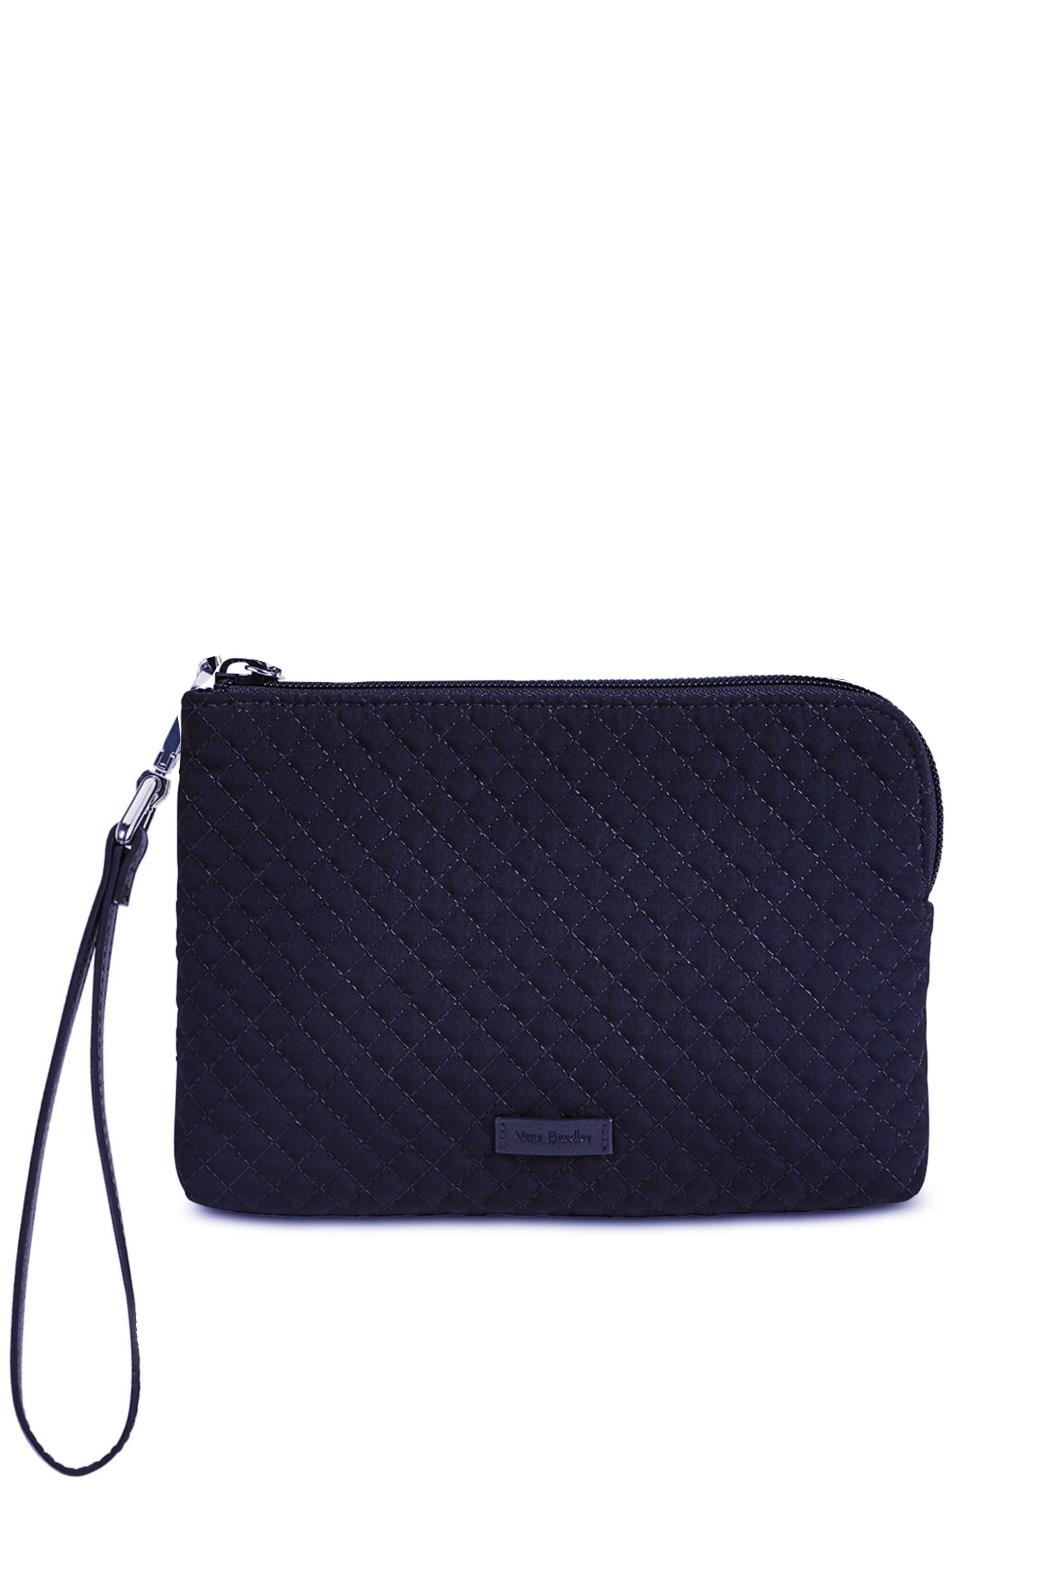 Vera Bradley Navy Velvet Pouch - Front Cropped Image